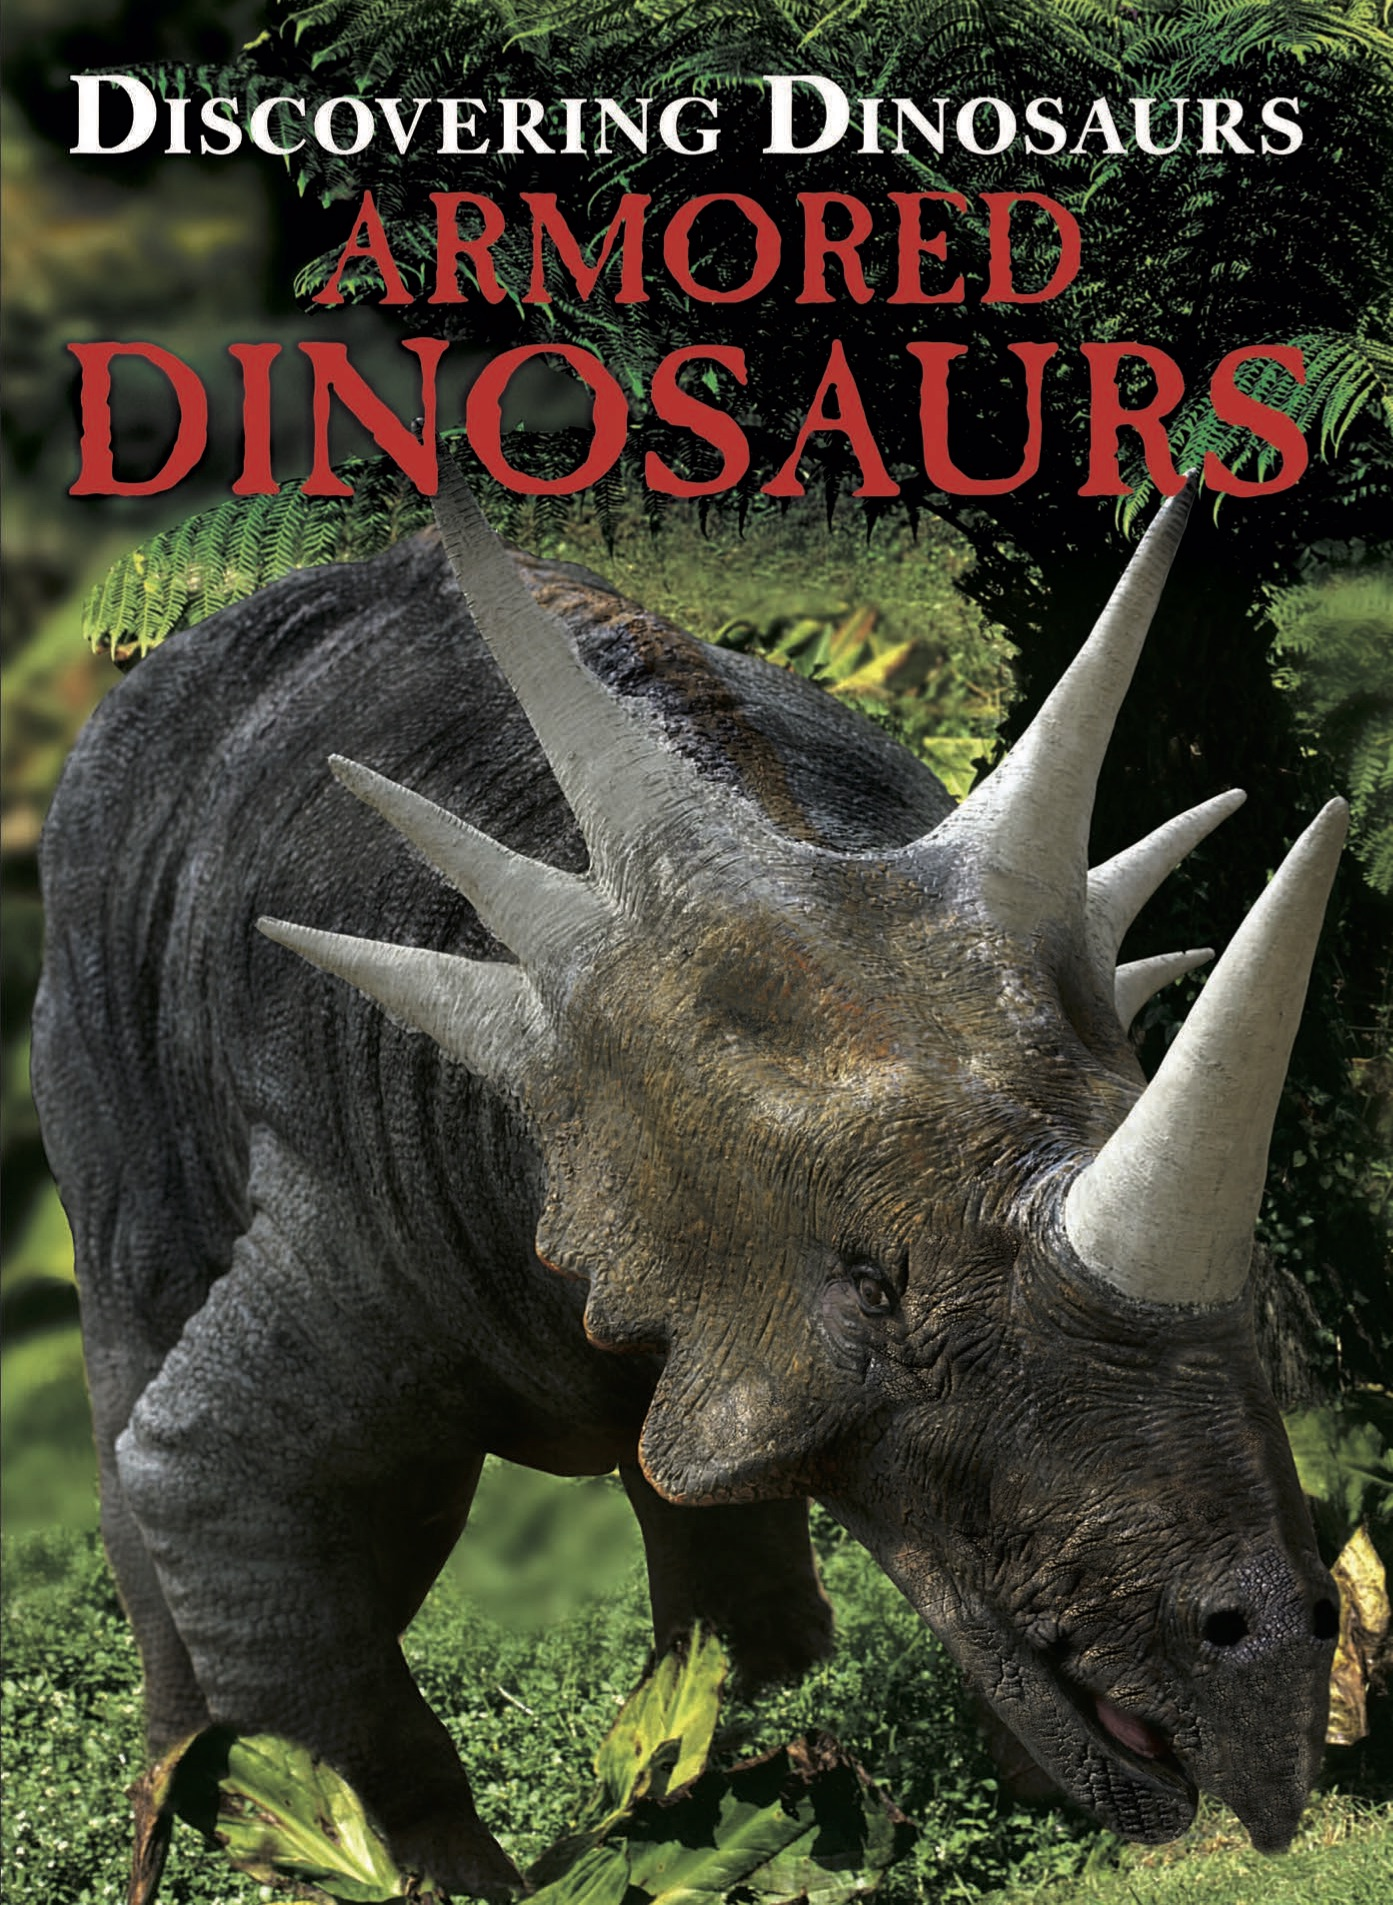 Discovering Dinosaurs: Armored Dinosaurs